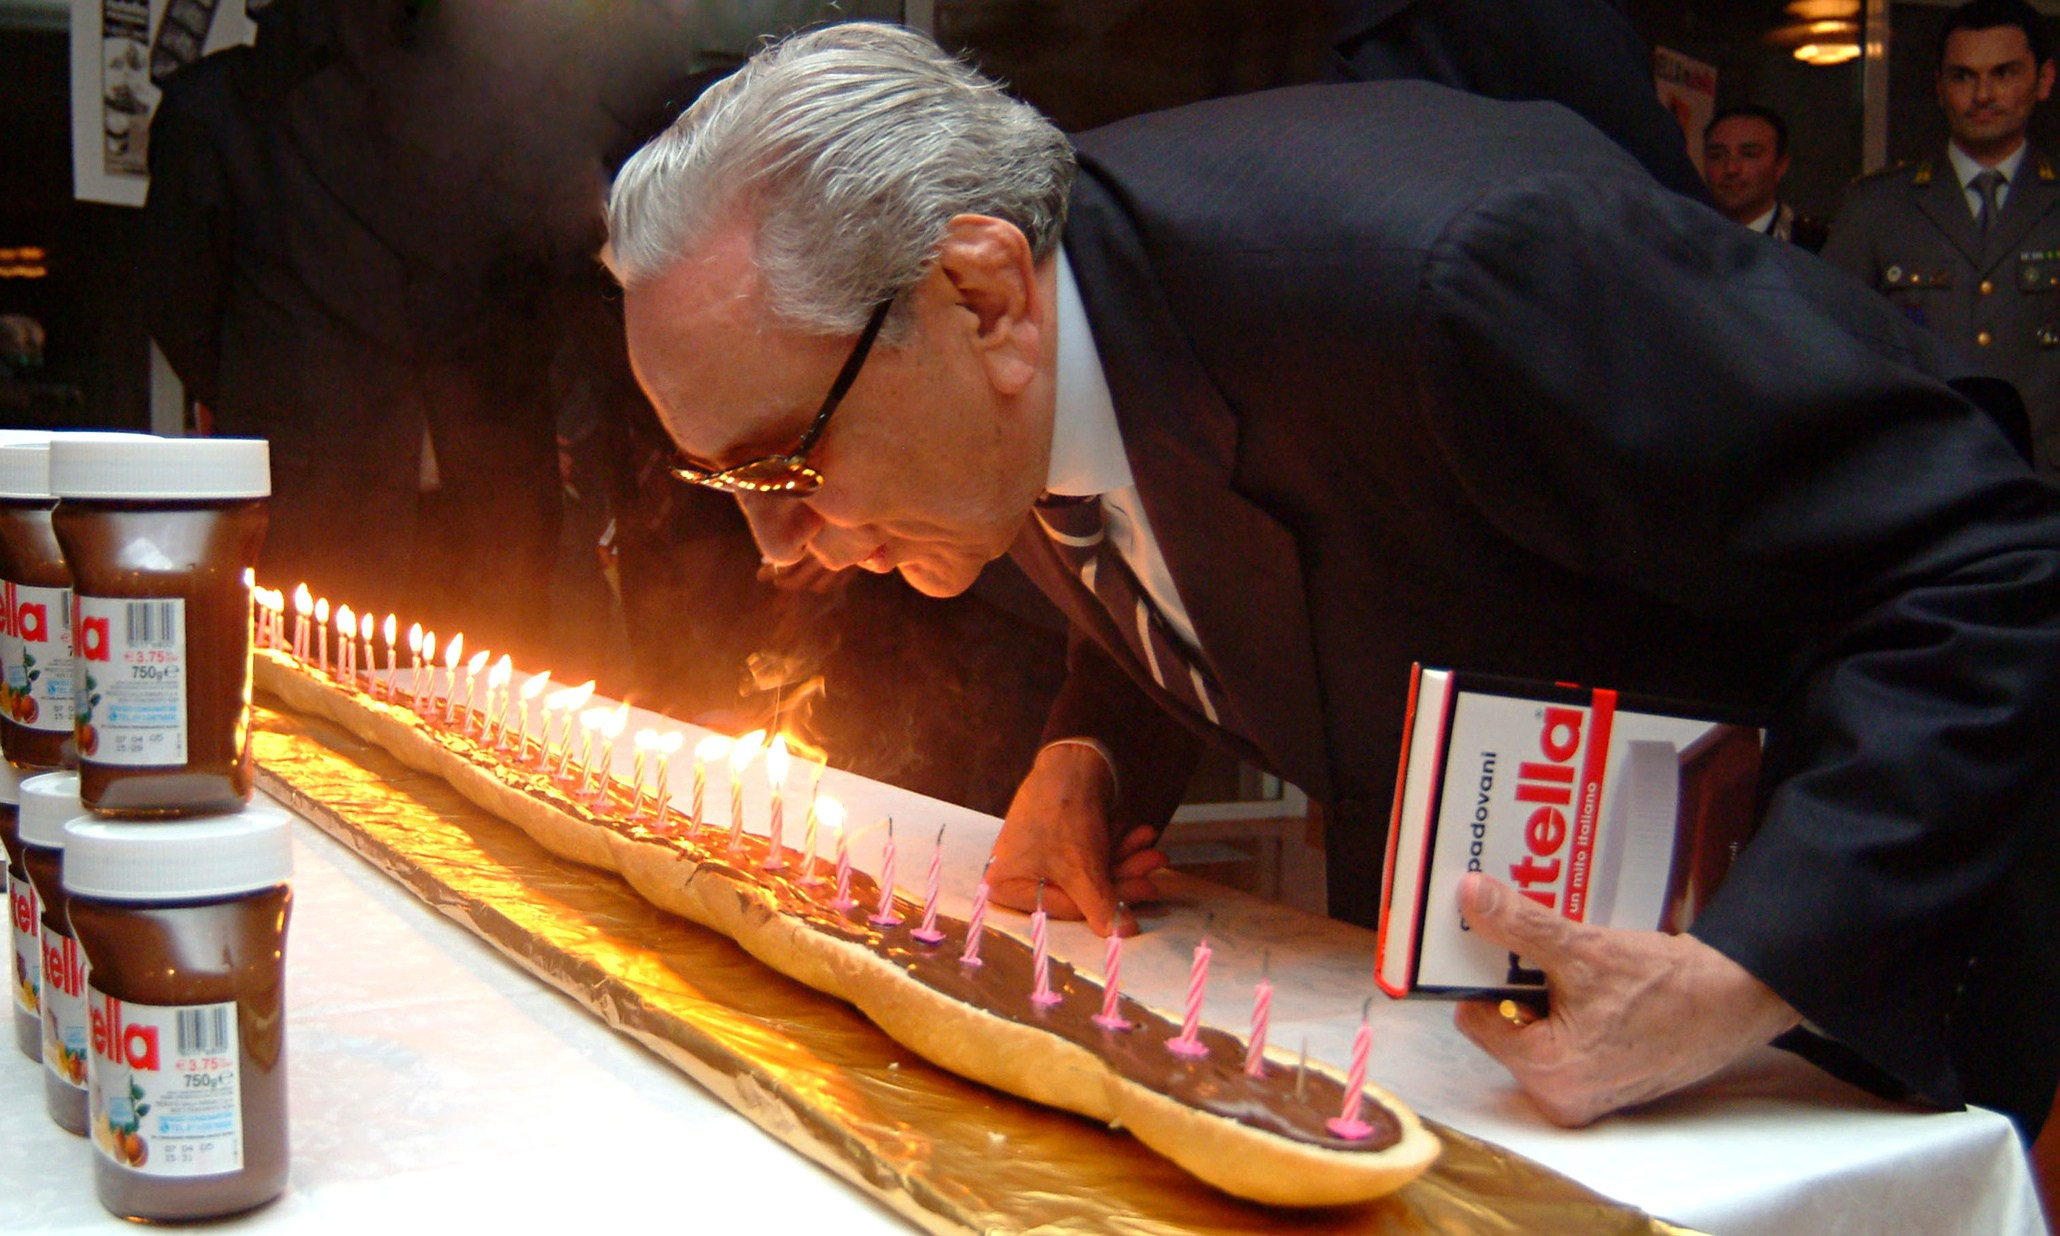 Michele Ferrero blows out candles on 40th anniversary of his famous Nutella chocolate spread